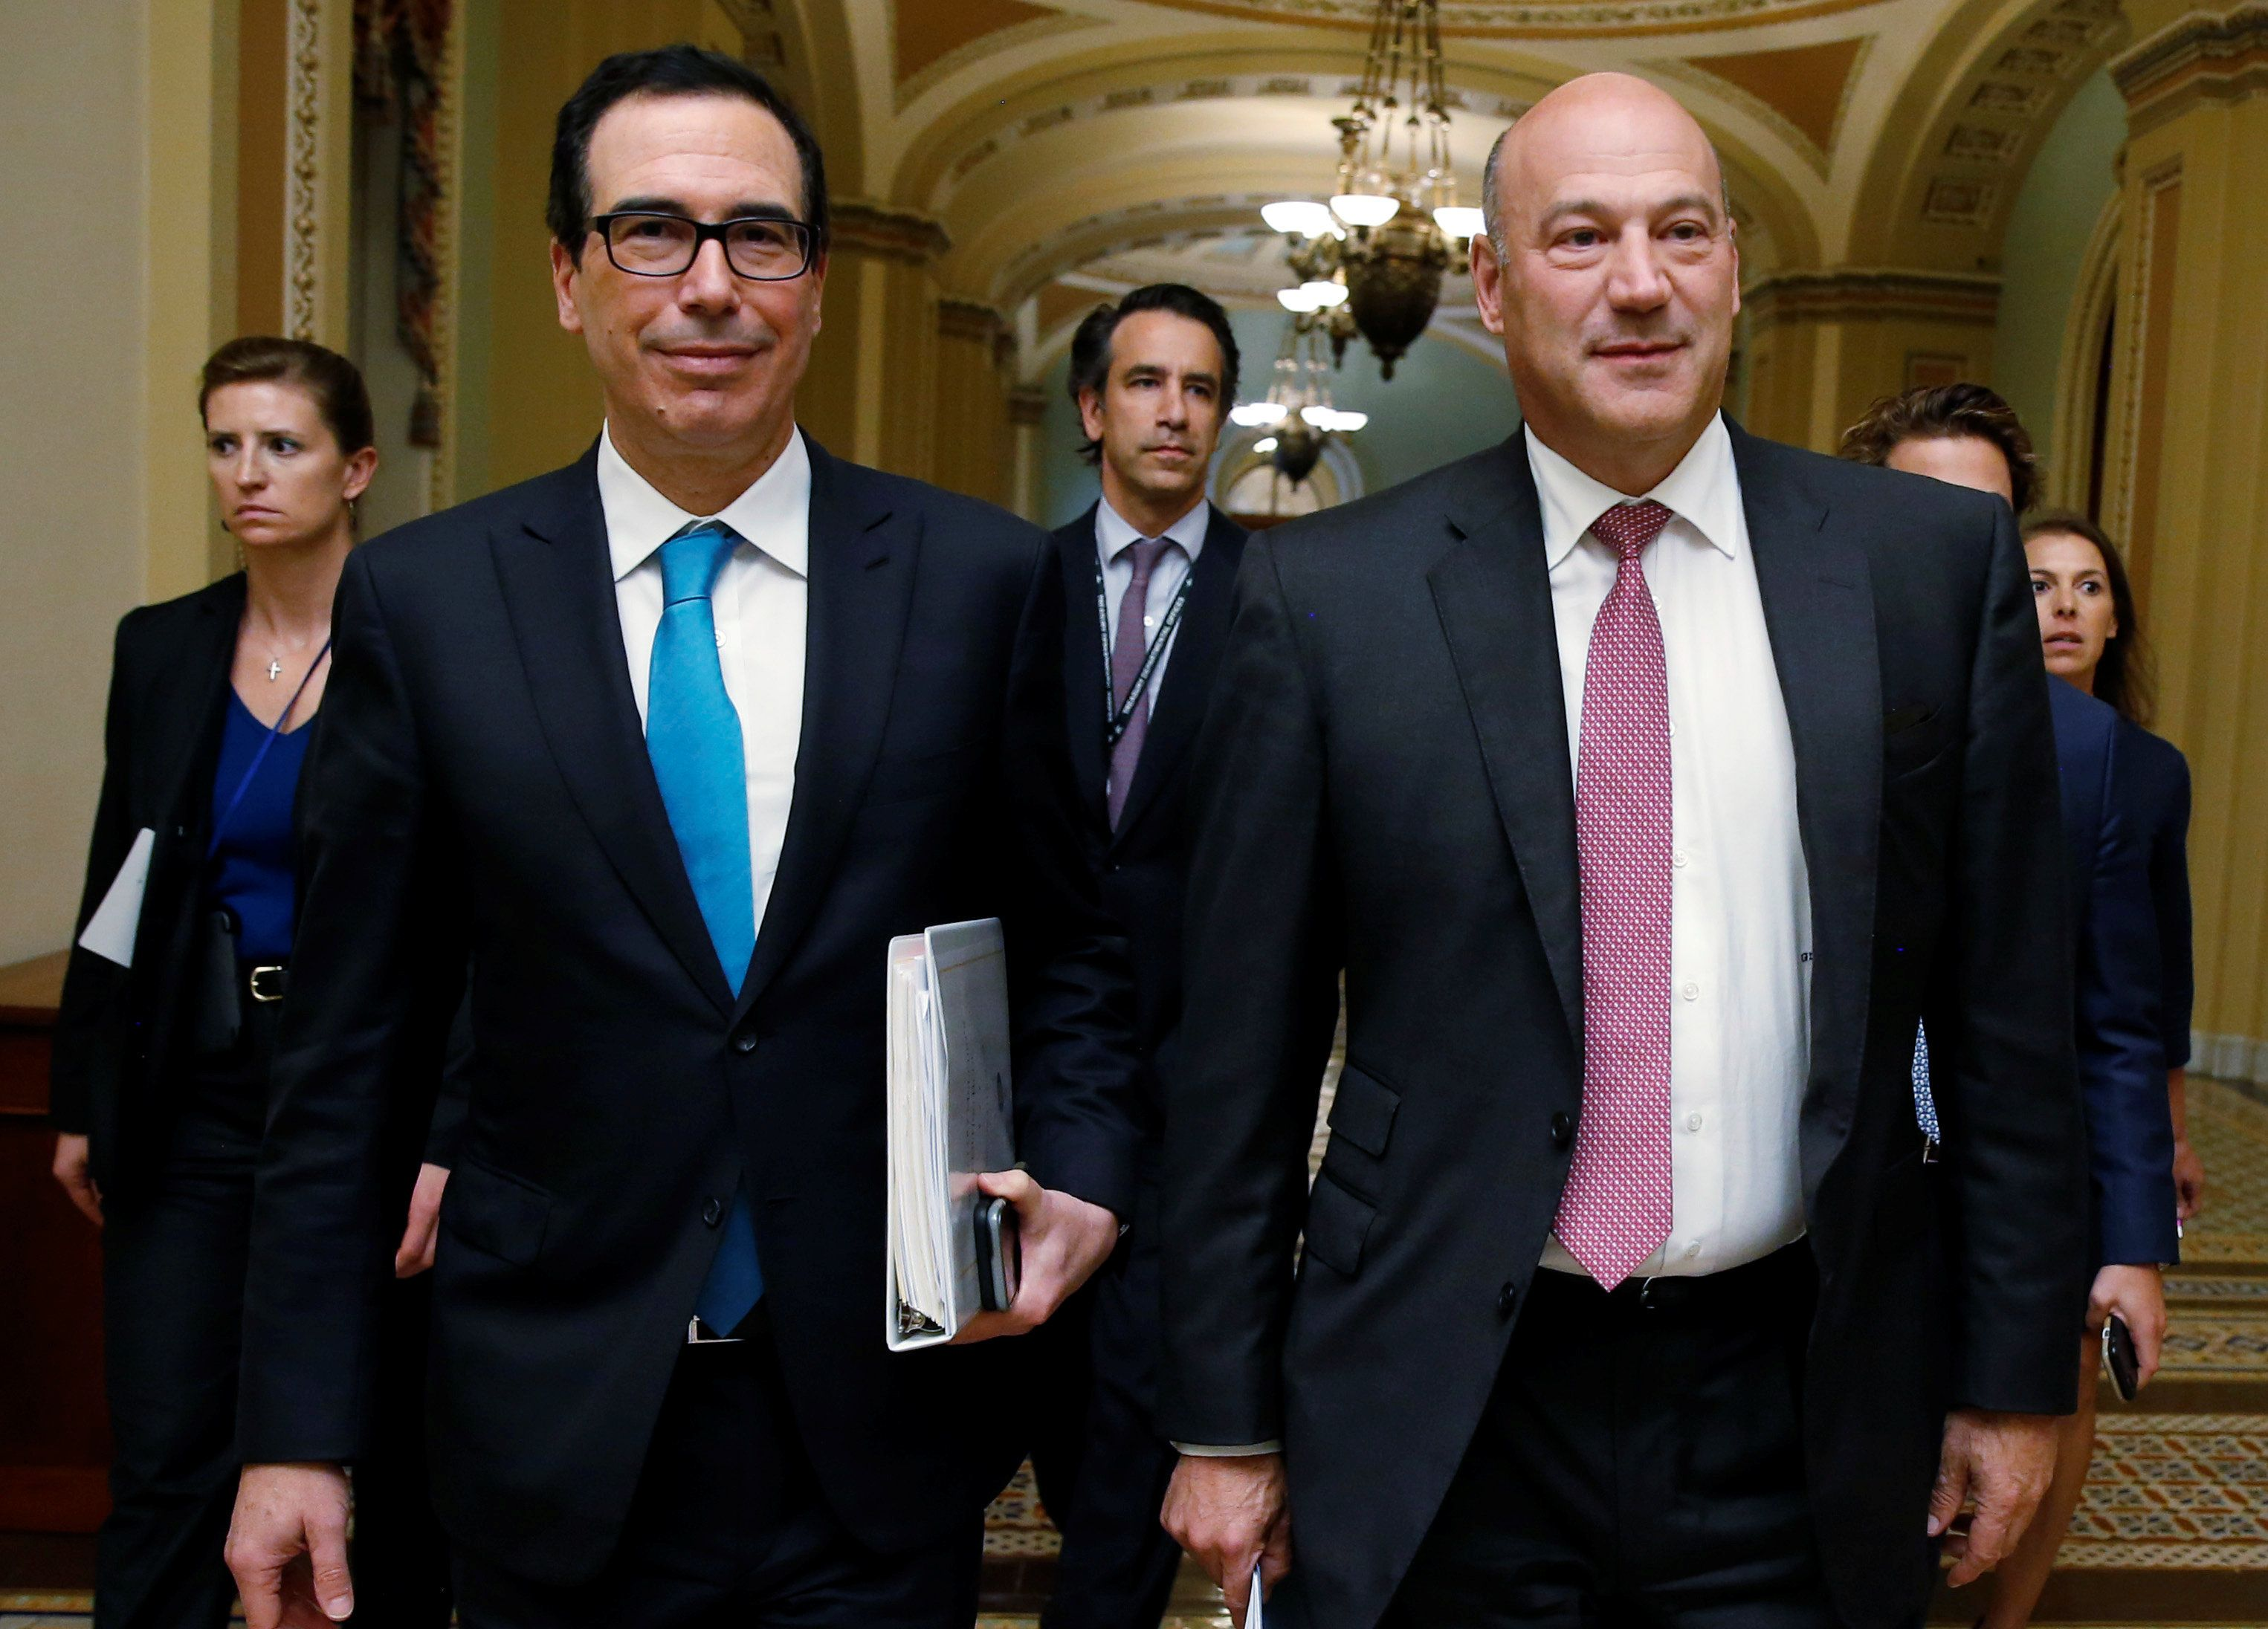 U.S. Secretary of the Treasury Steven Mnuchin and Director of the National Economic Council Gary Cohn walk after meeting with Republican law makers about tax reform on Capitol Hill in Washington, U.S., September 12, 2017. REUTERS/Joshua Roberts